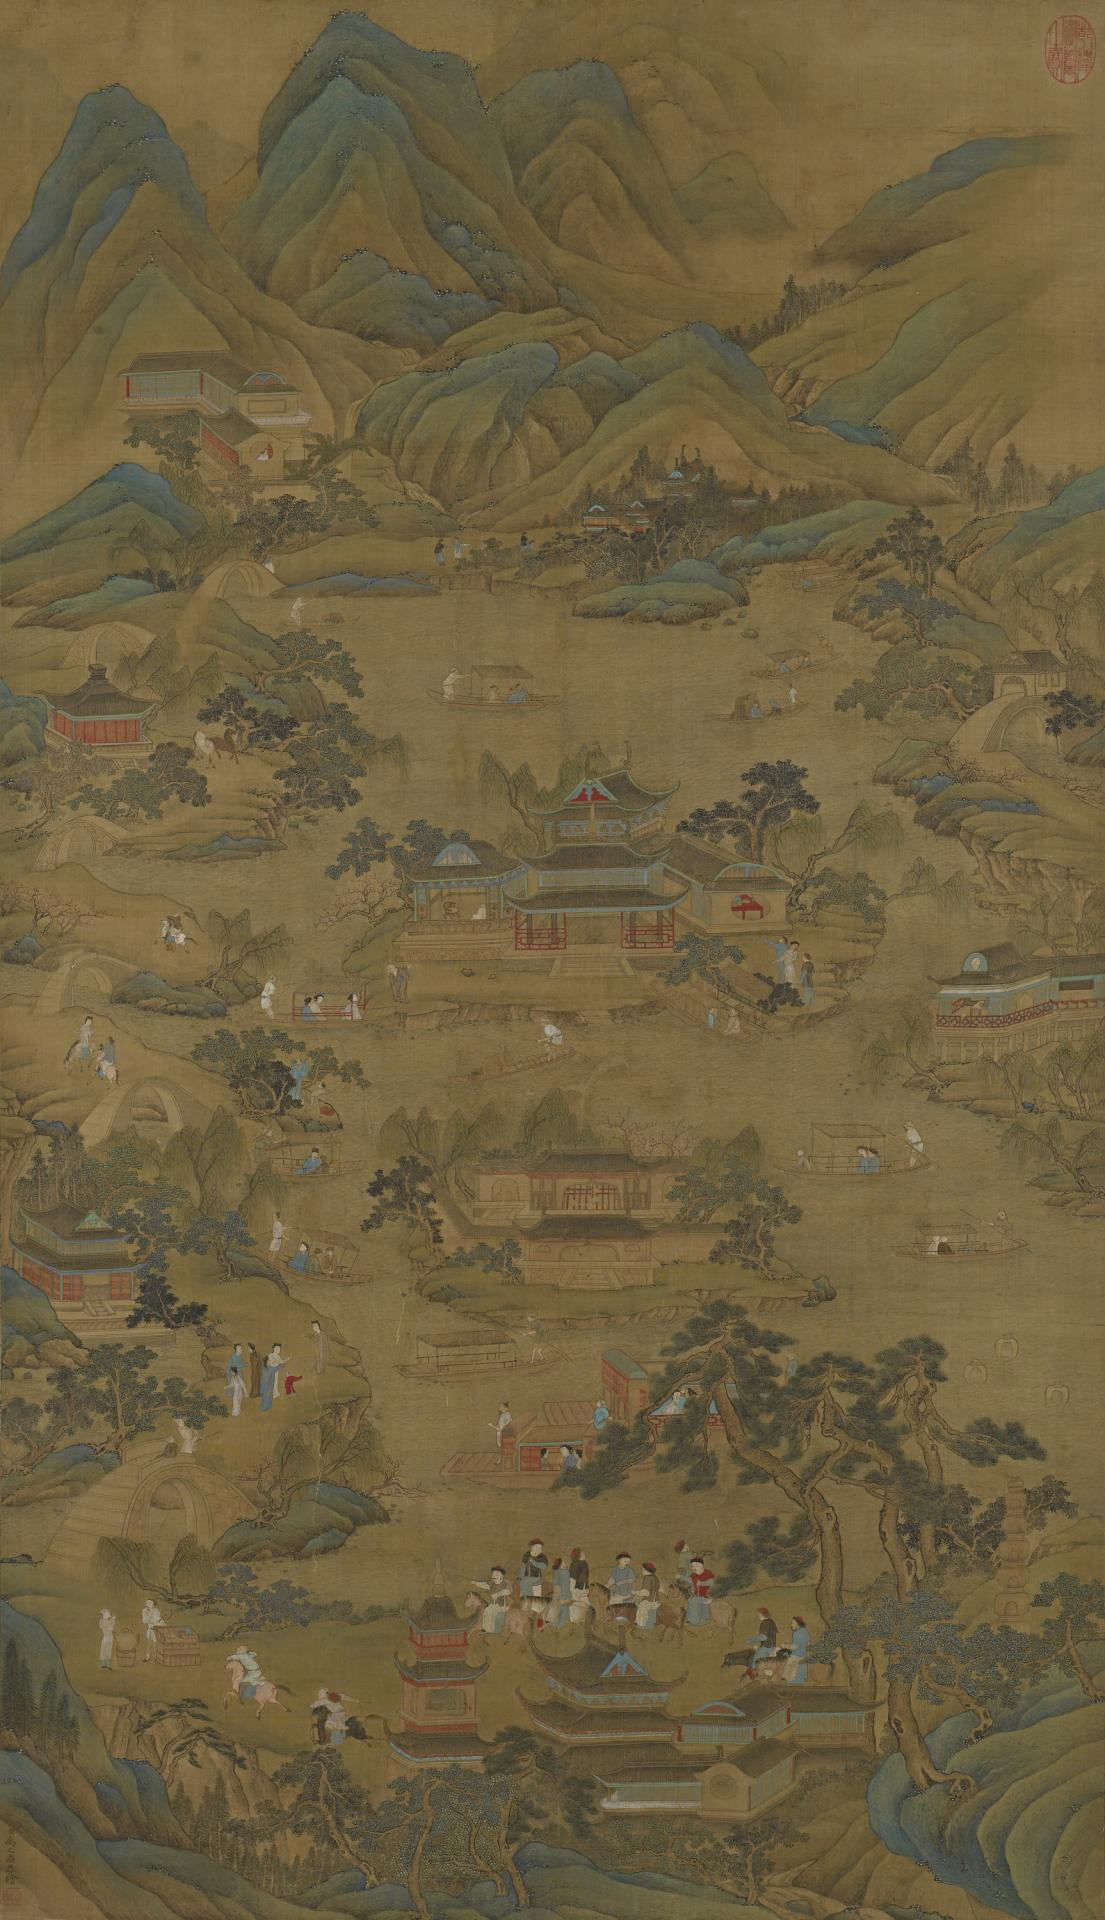 The Kangxi Emperor's southern tour